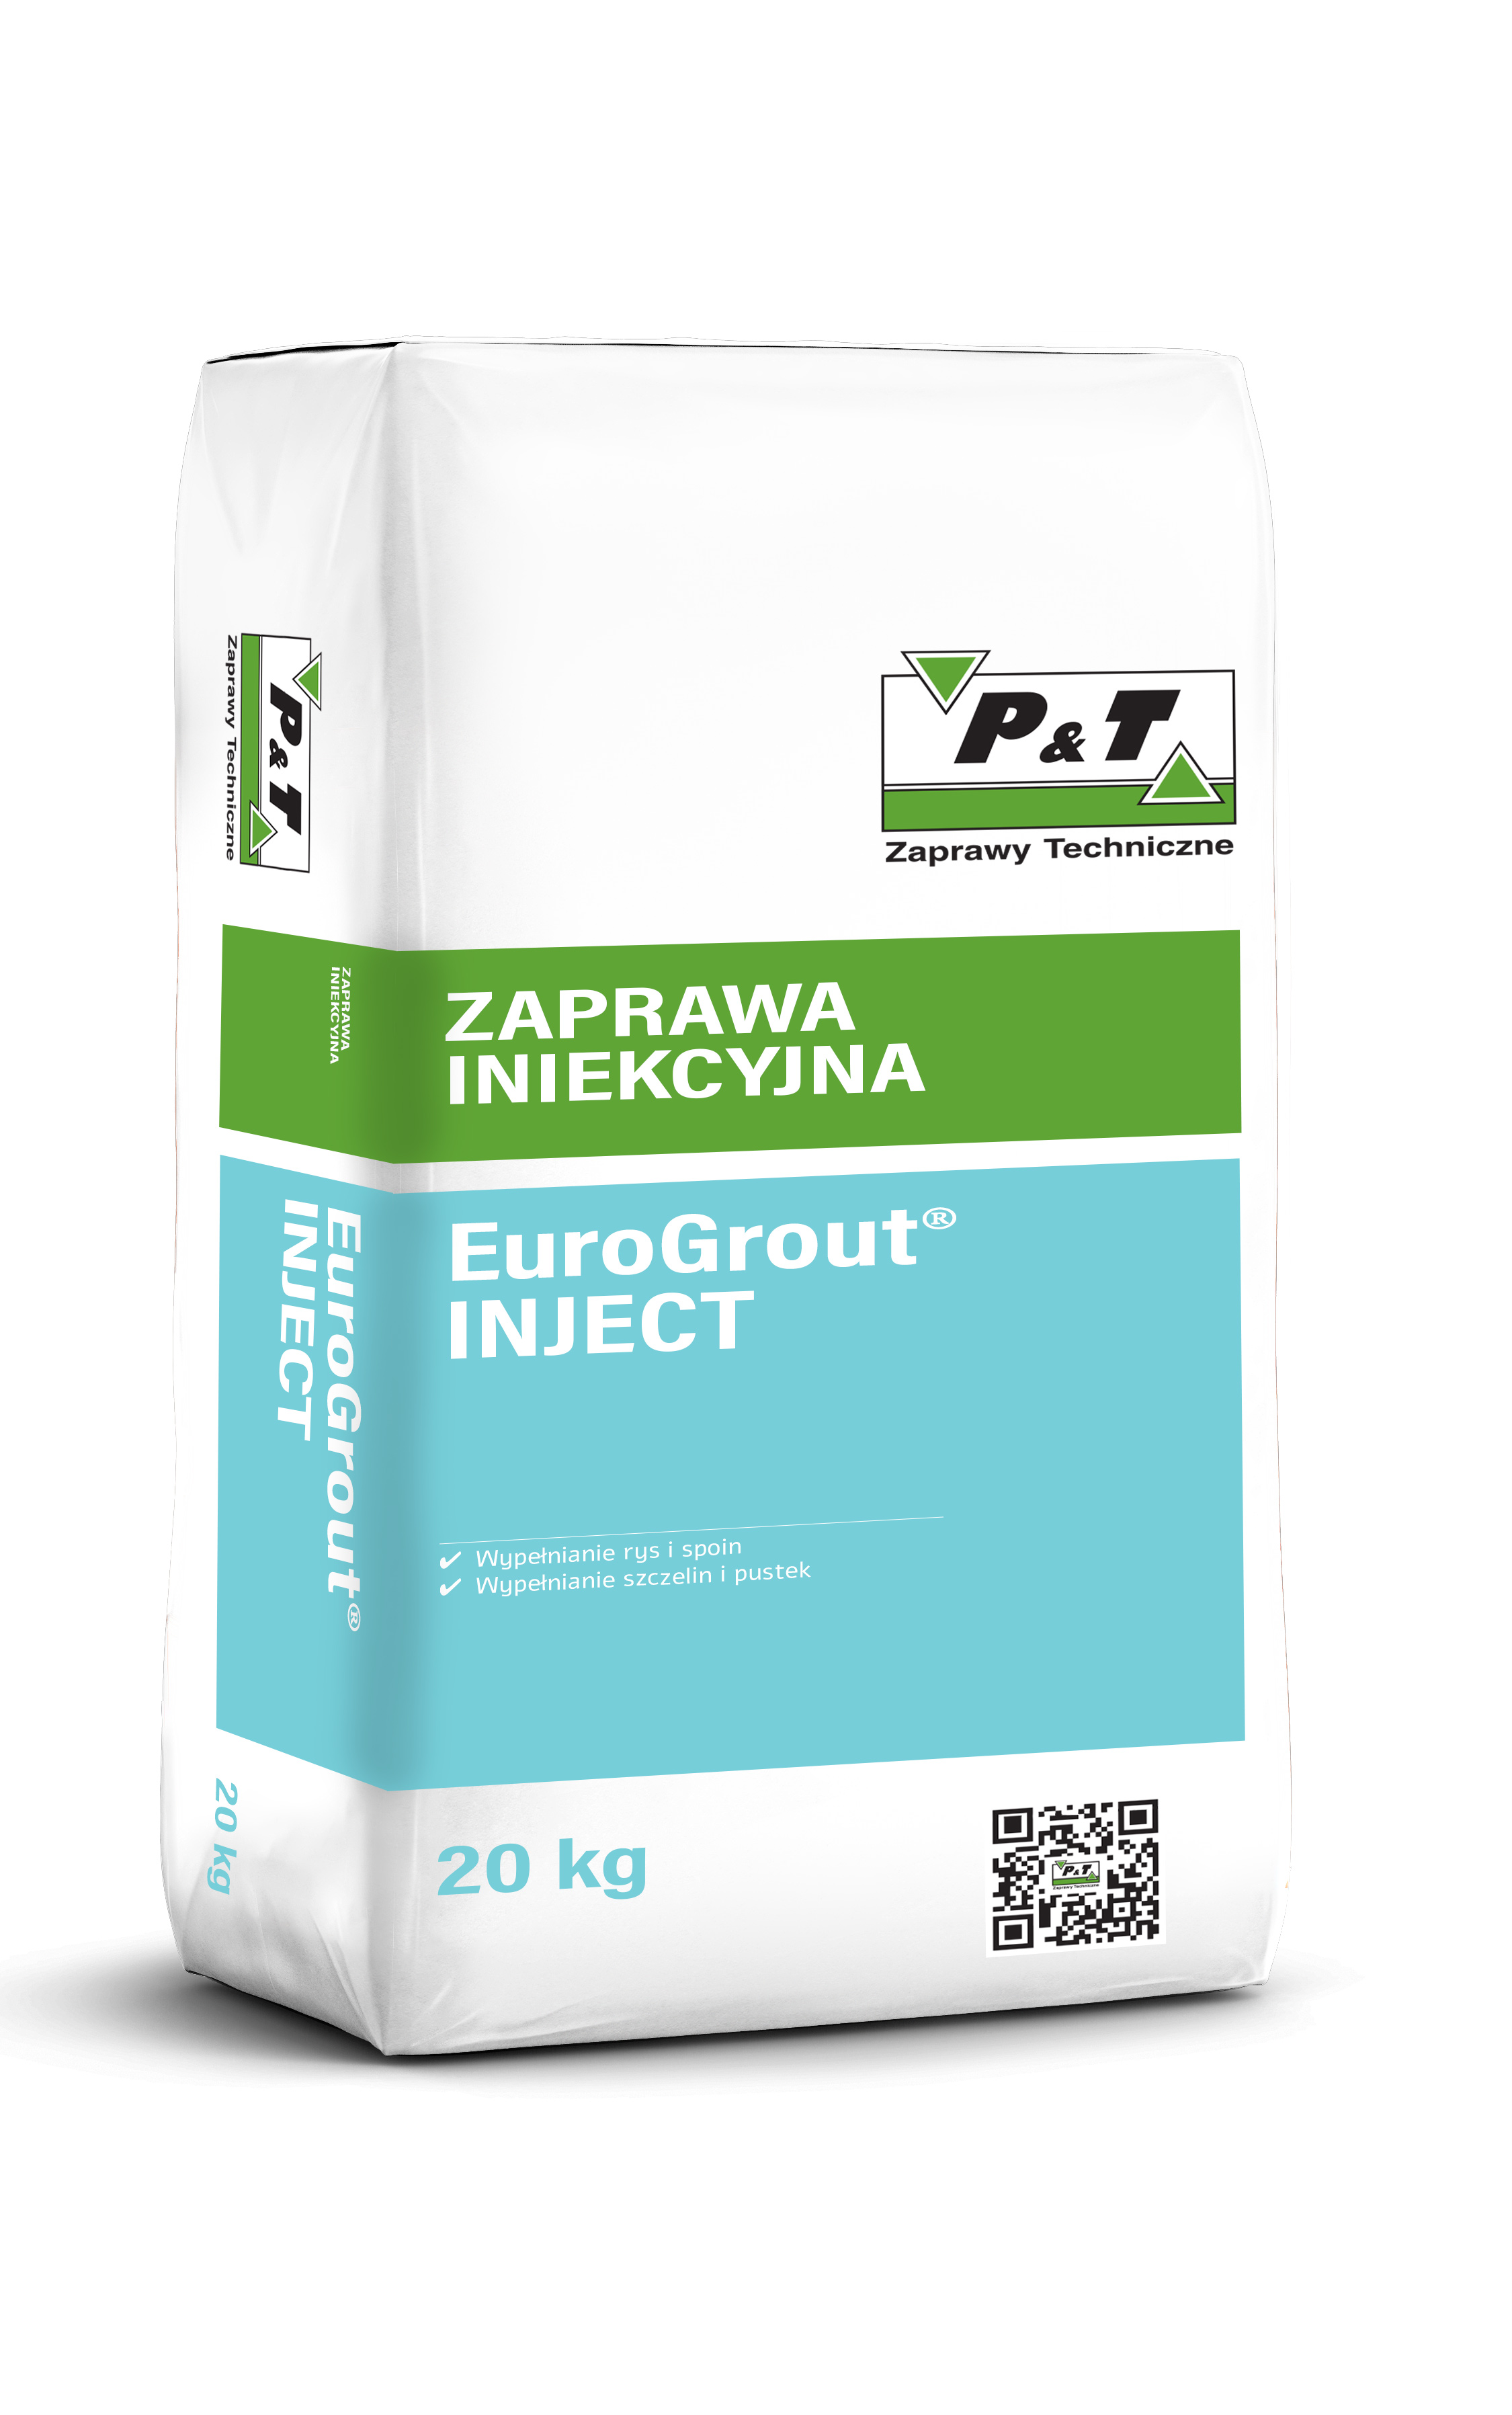 EuroGrout Inject